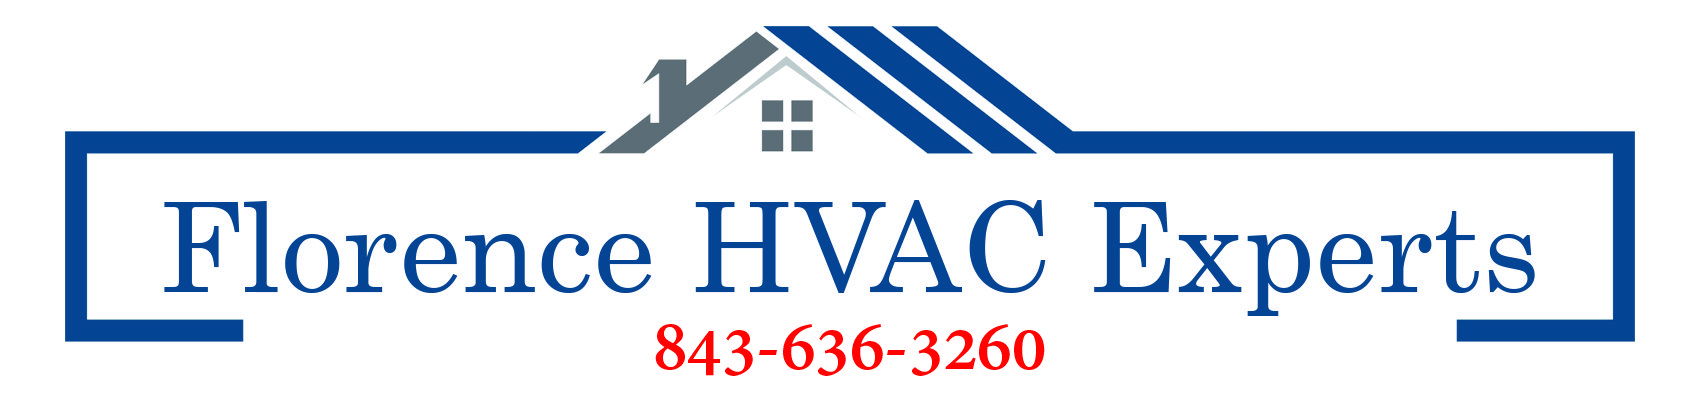 Florence HVAC Experts